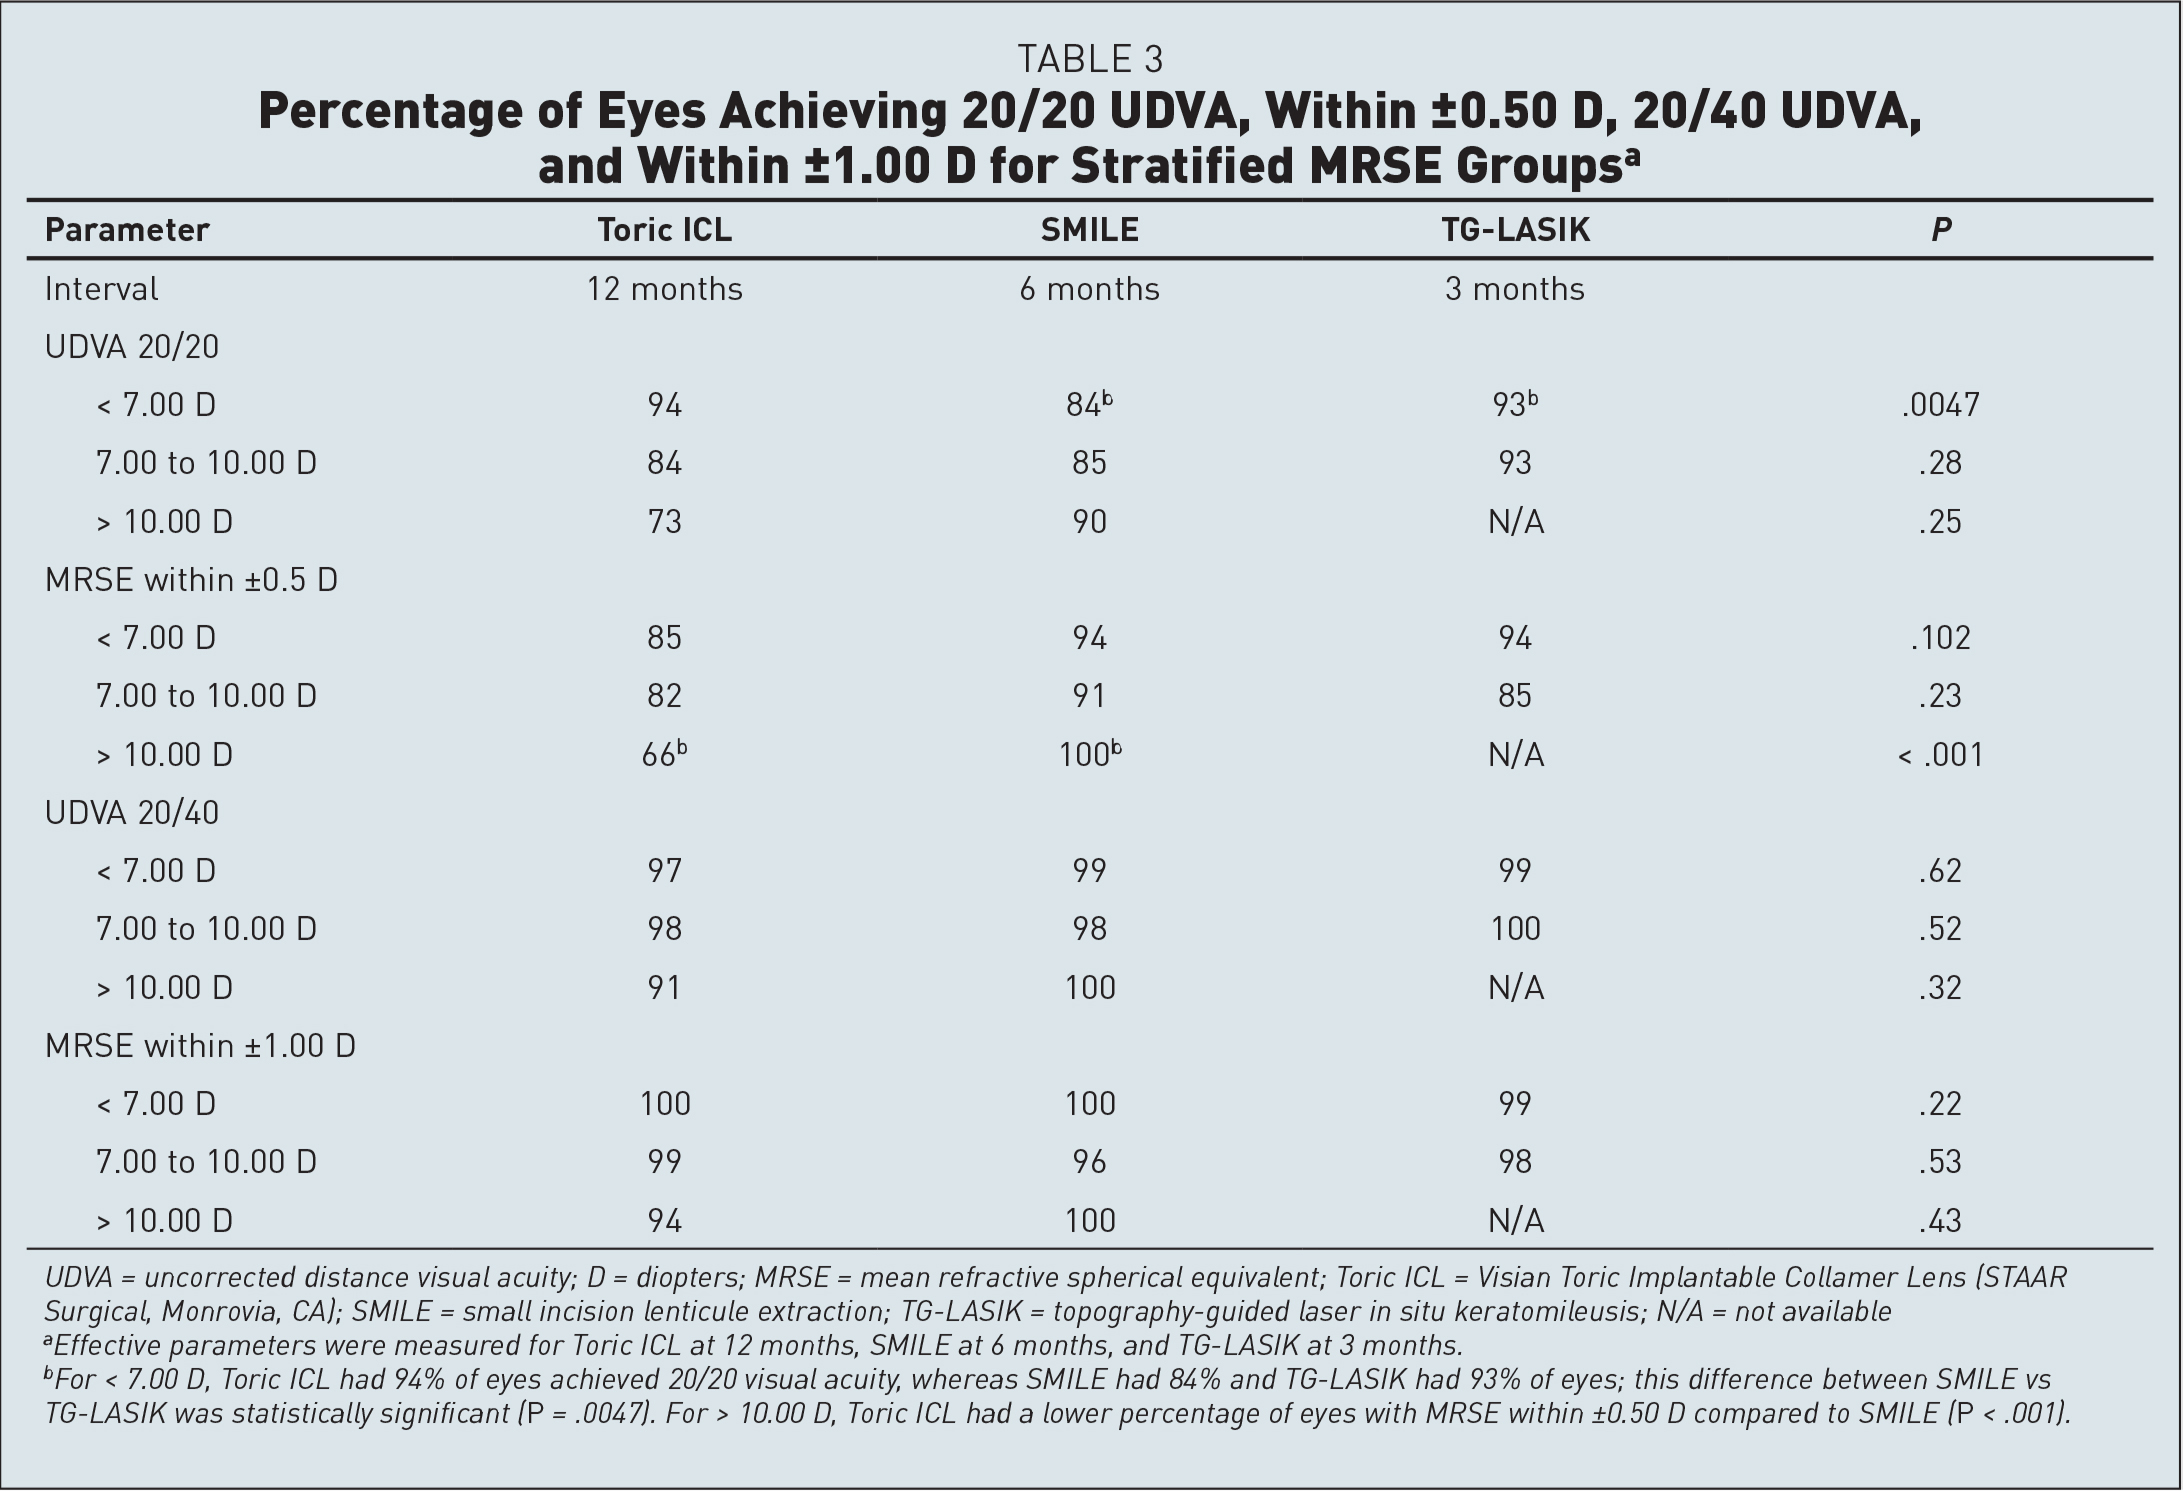 Percentage of Eyes Achieving 20/20 UDVA, Within ±0.50 D, 20/40 UDVA, and Within ±1.00 D for Stratified MRSE Groupsa